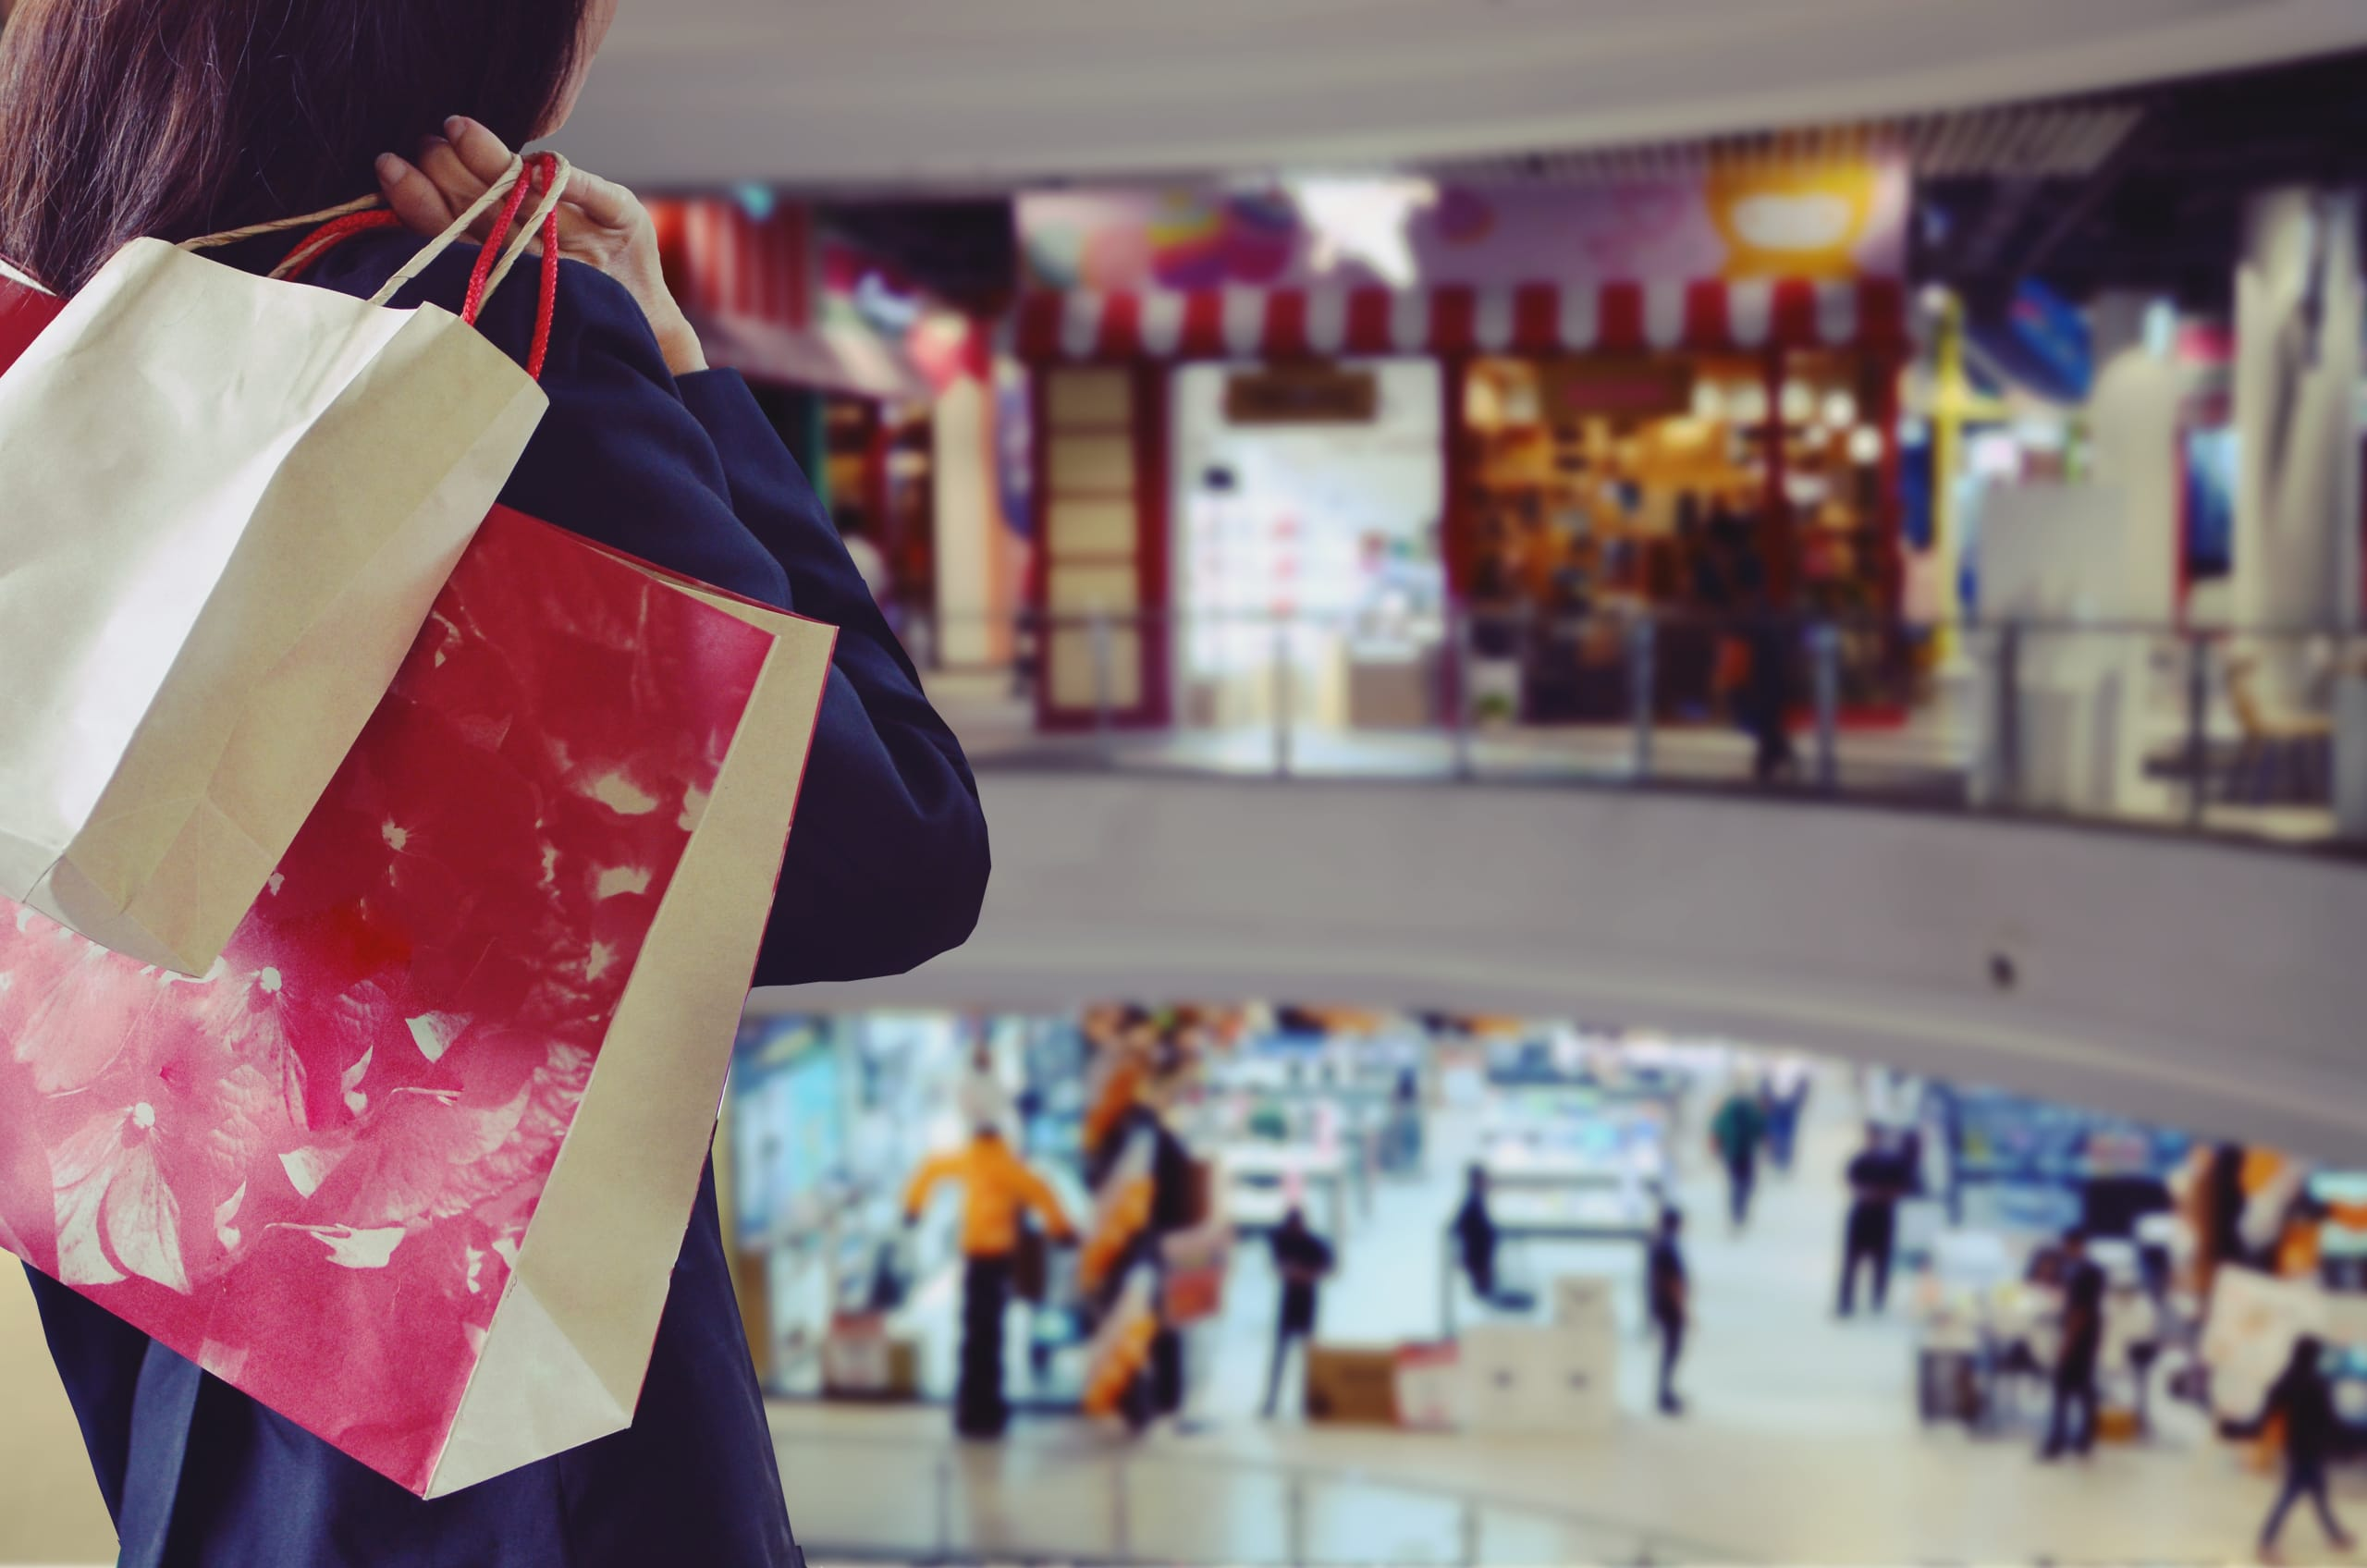 gastos deducibles irs Woman,Holding,Shopping,Bags,In,The,Shopping,Mall